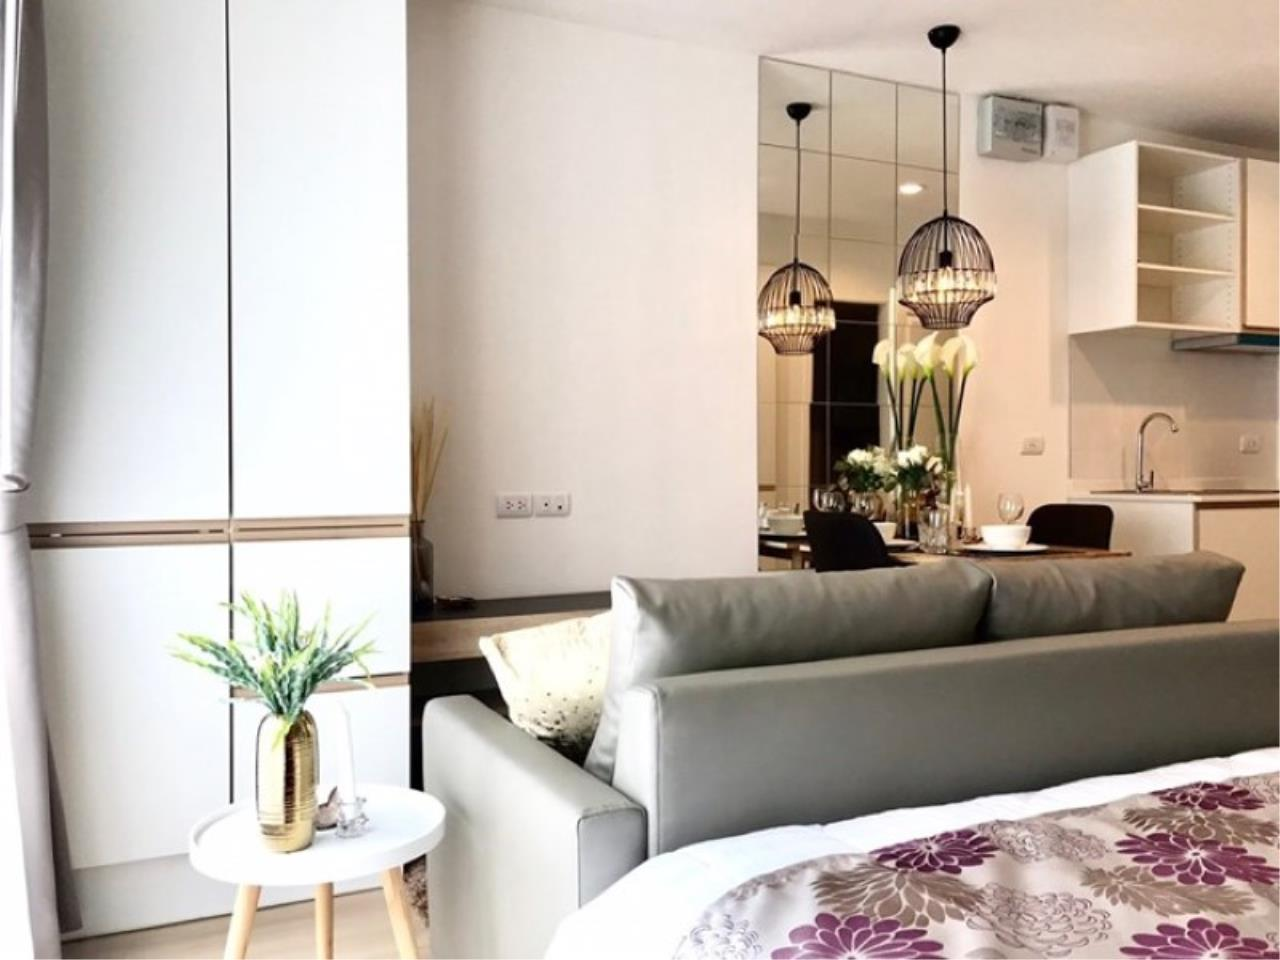 Century21 Skylux Agency's The Nest Sukhumvit 22 / Condo For Rent / 1 Bedroom / 25 SQM / MRT Queen Sirikit National Convention Centre / Bangkok 3